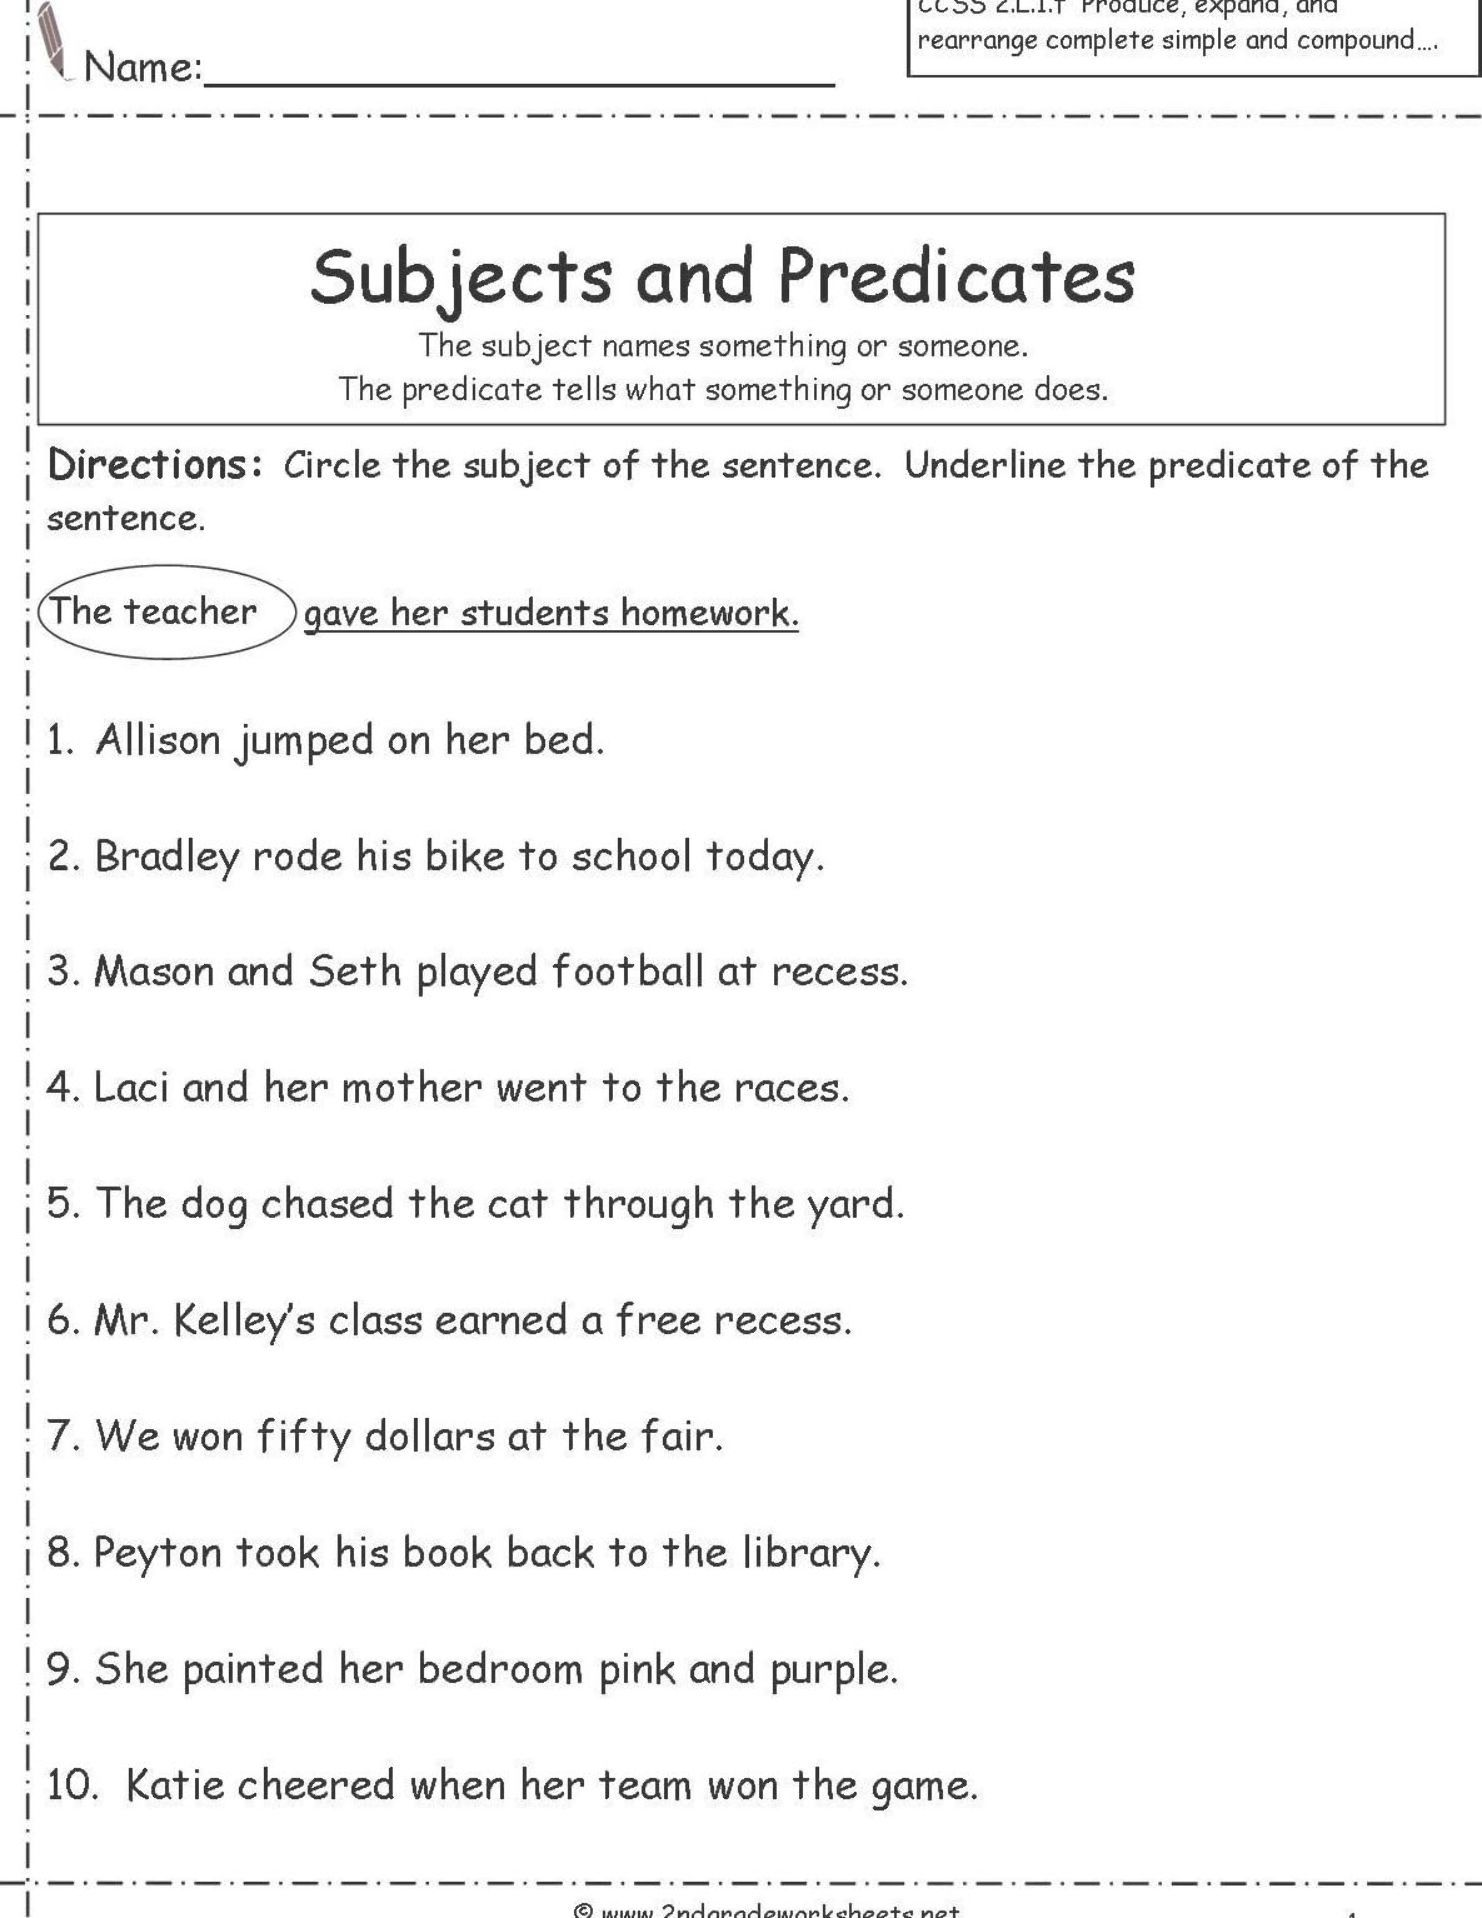 medium resolution of Subject And Predicate Worksheets For Second Grade   Subject and predicate  worksheets